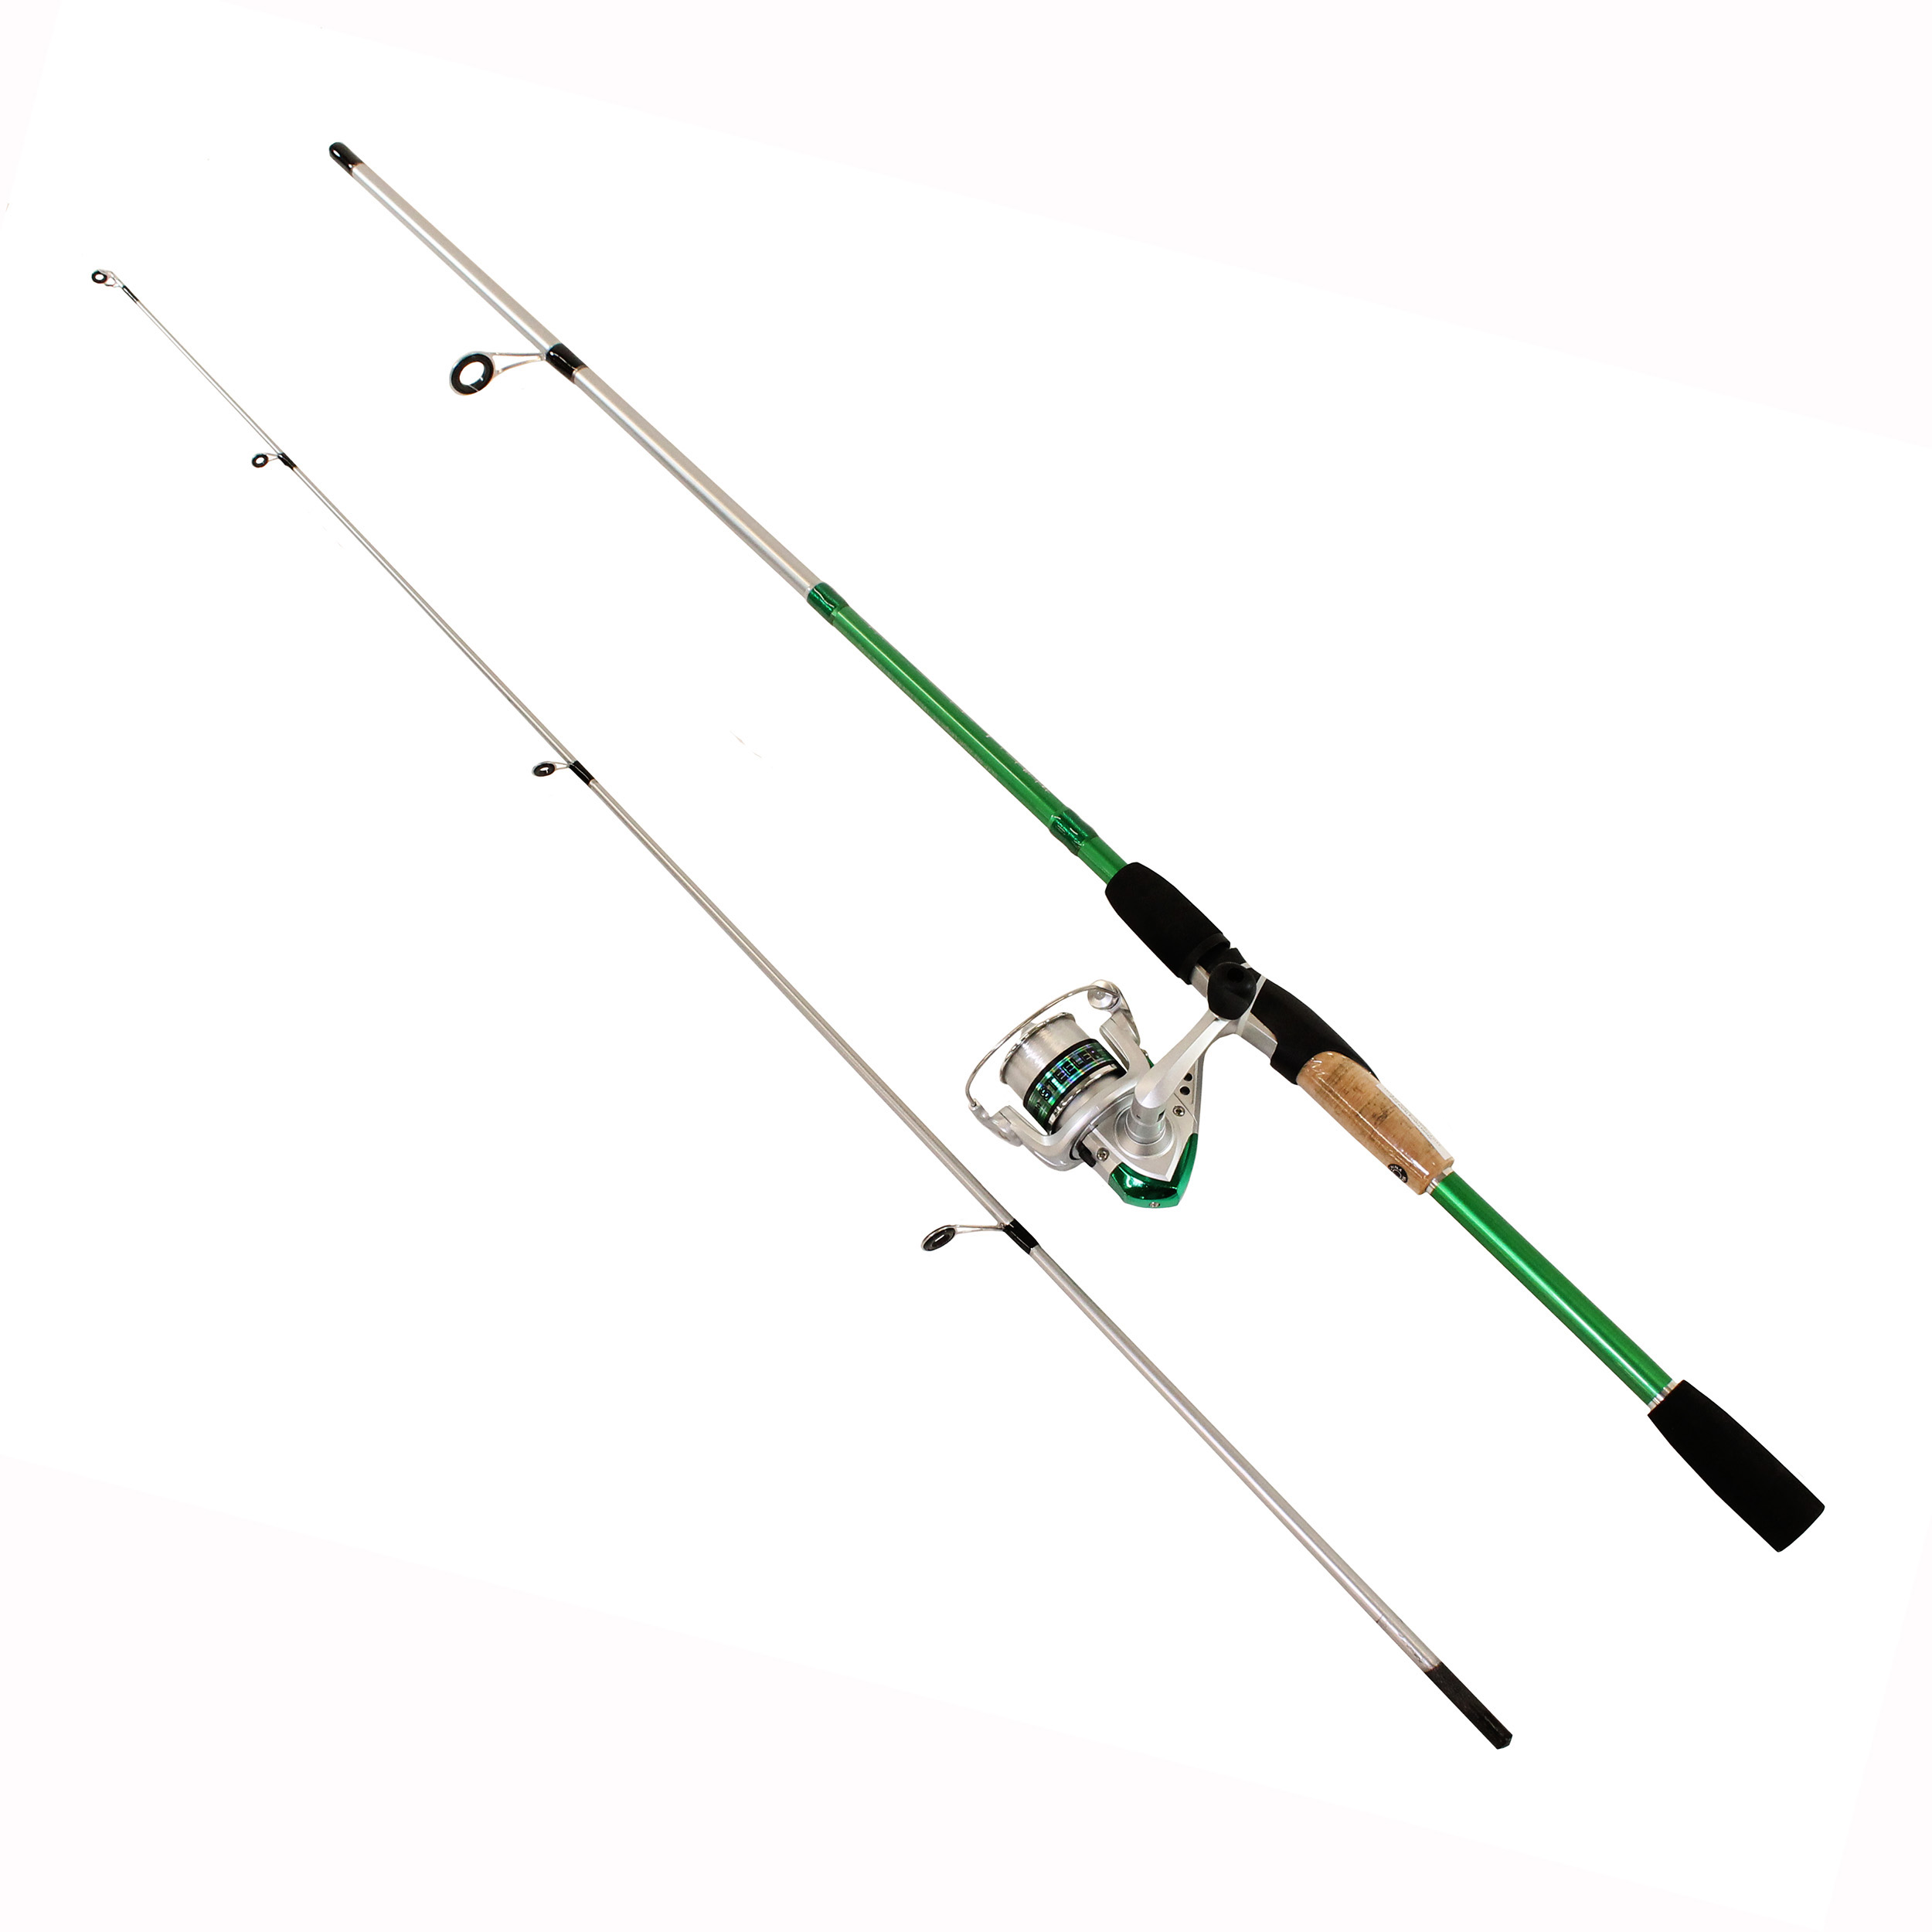 Okuma Steeler XP Spinning Combo 20 Reel Size, 1BB Bearings, 6' Length,...